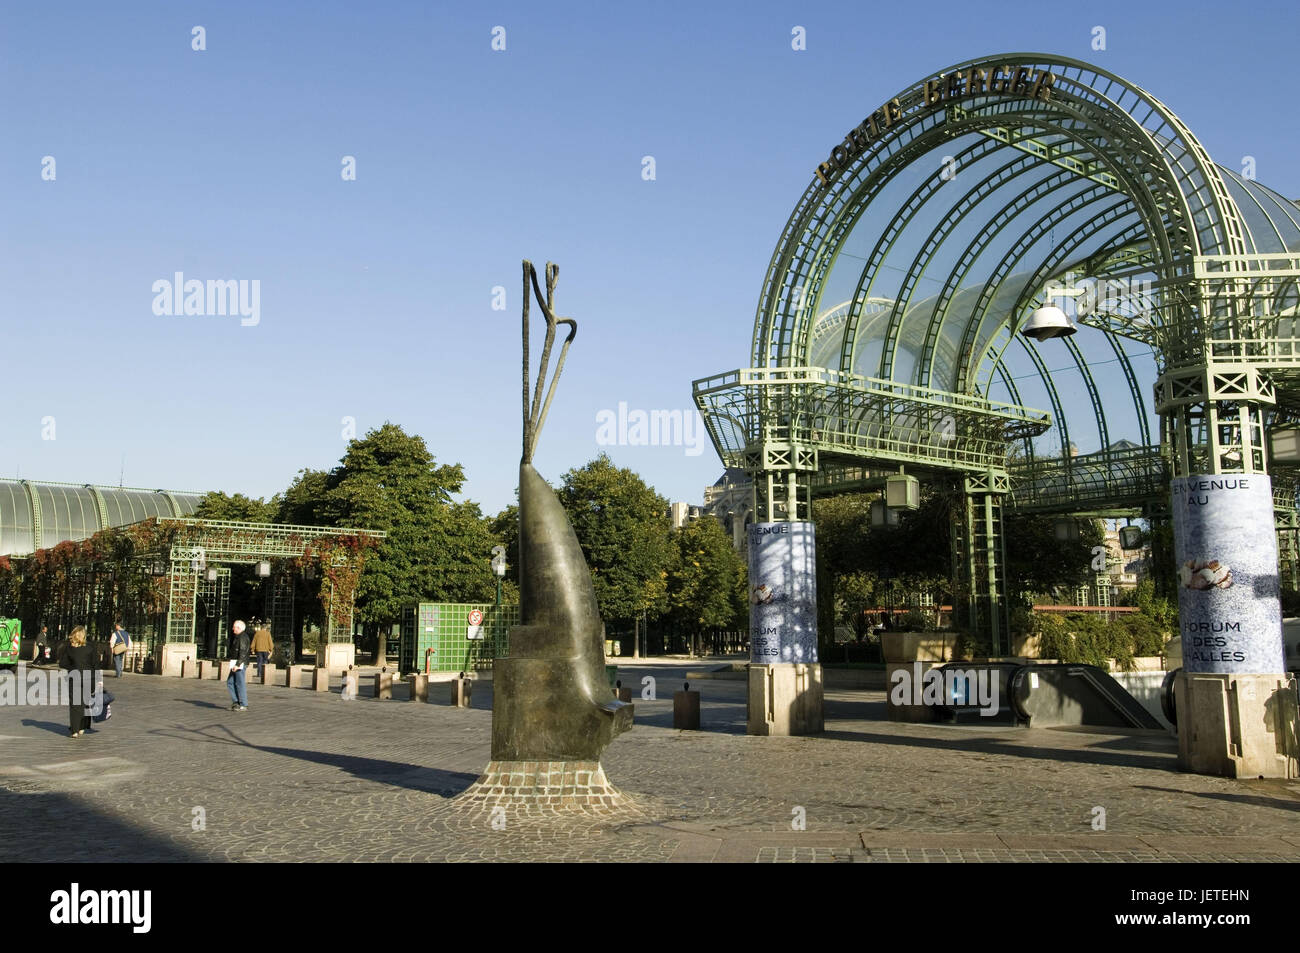 France, Paris, forum of the sound, round arches, passers-by